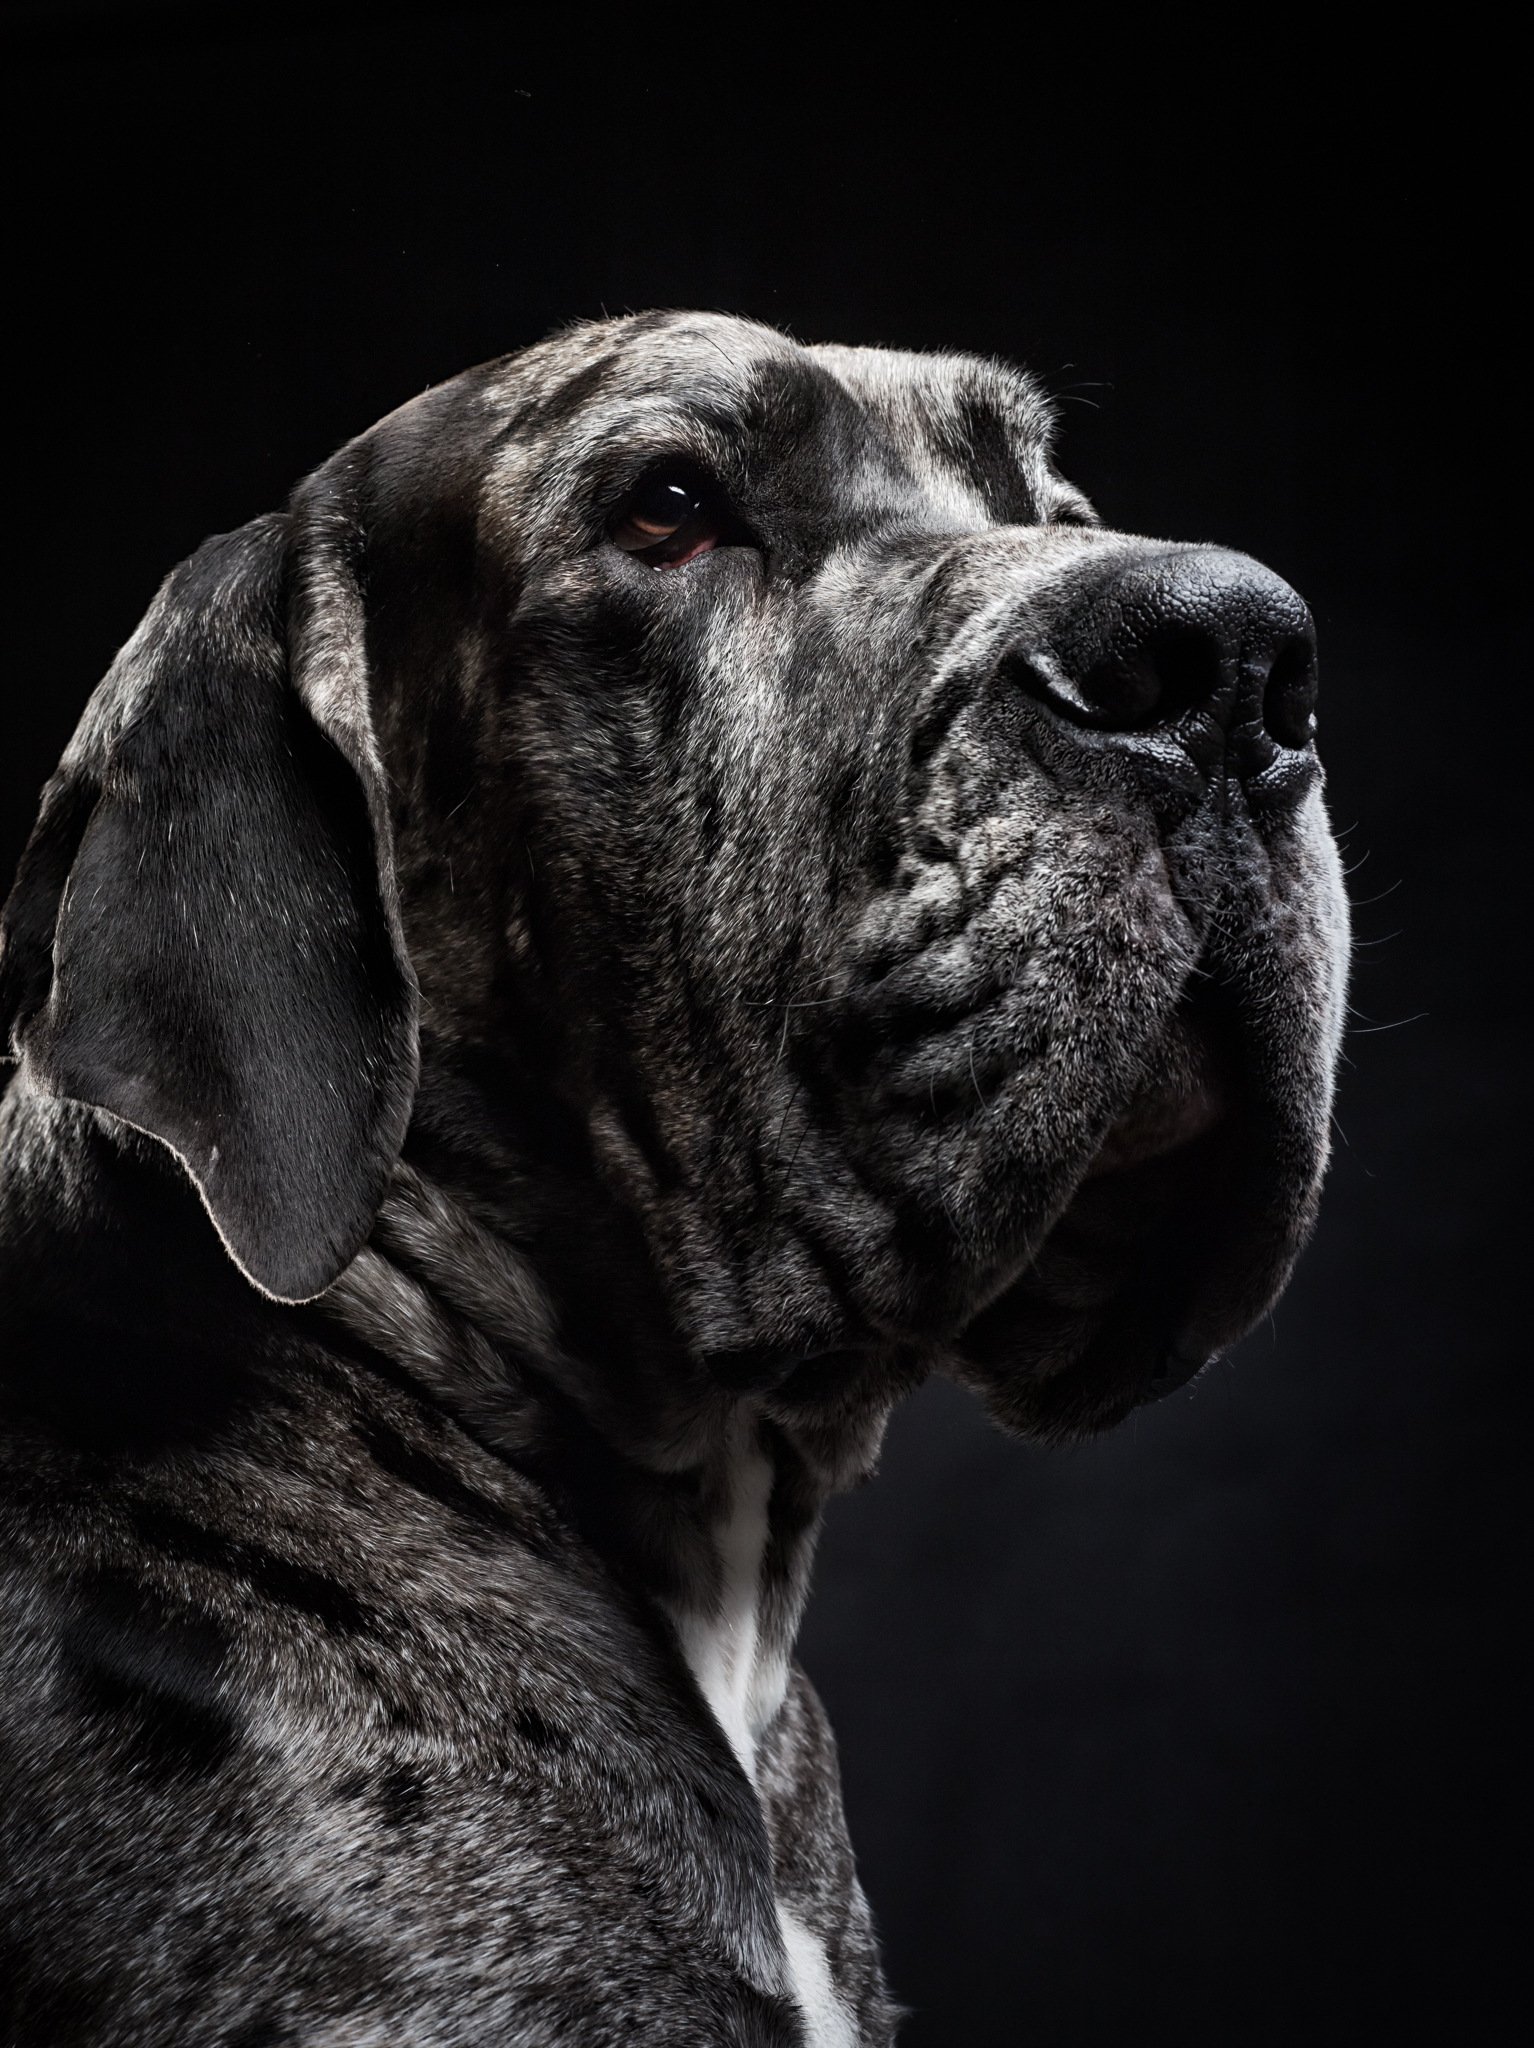 klaus-dyba-dog-photography-great-dane